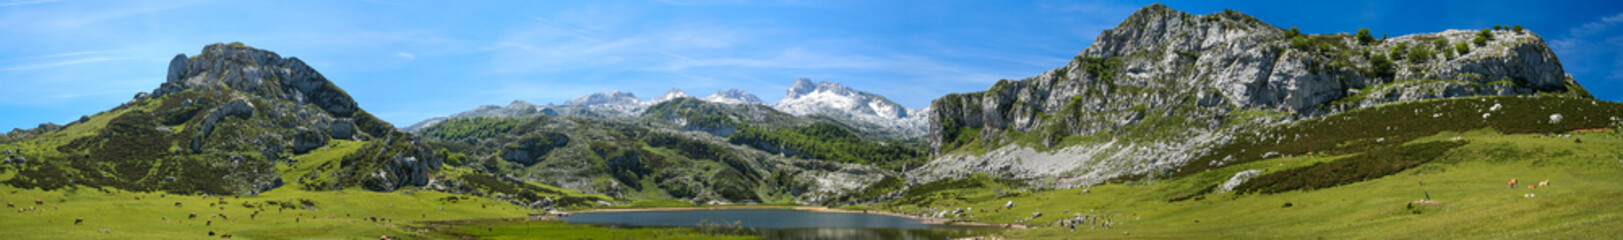 Panoramic photograph of the lakes of Covadonga in Asturias, Spain.